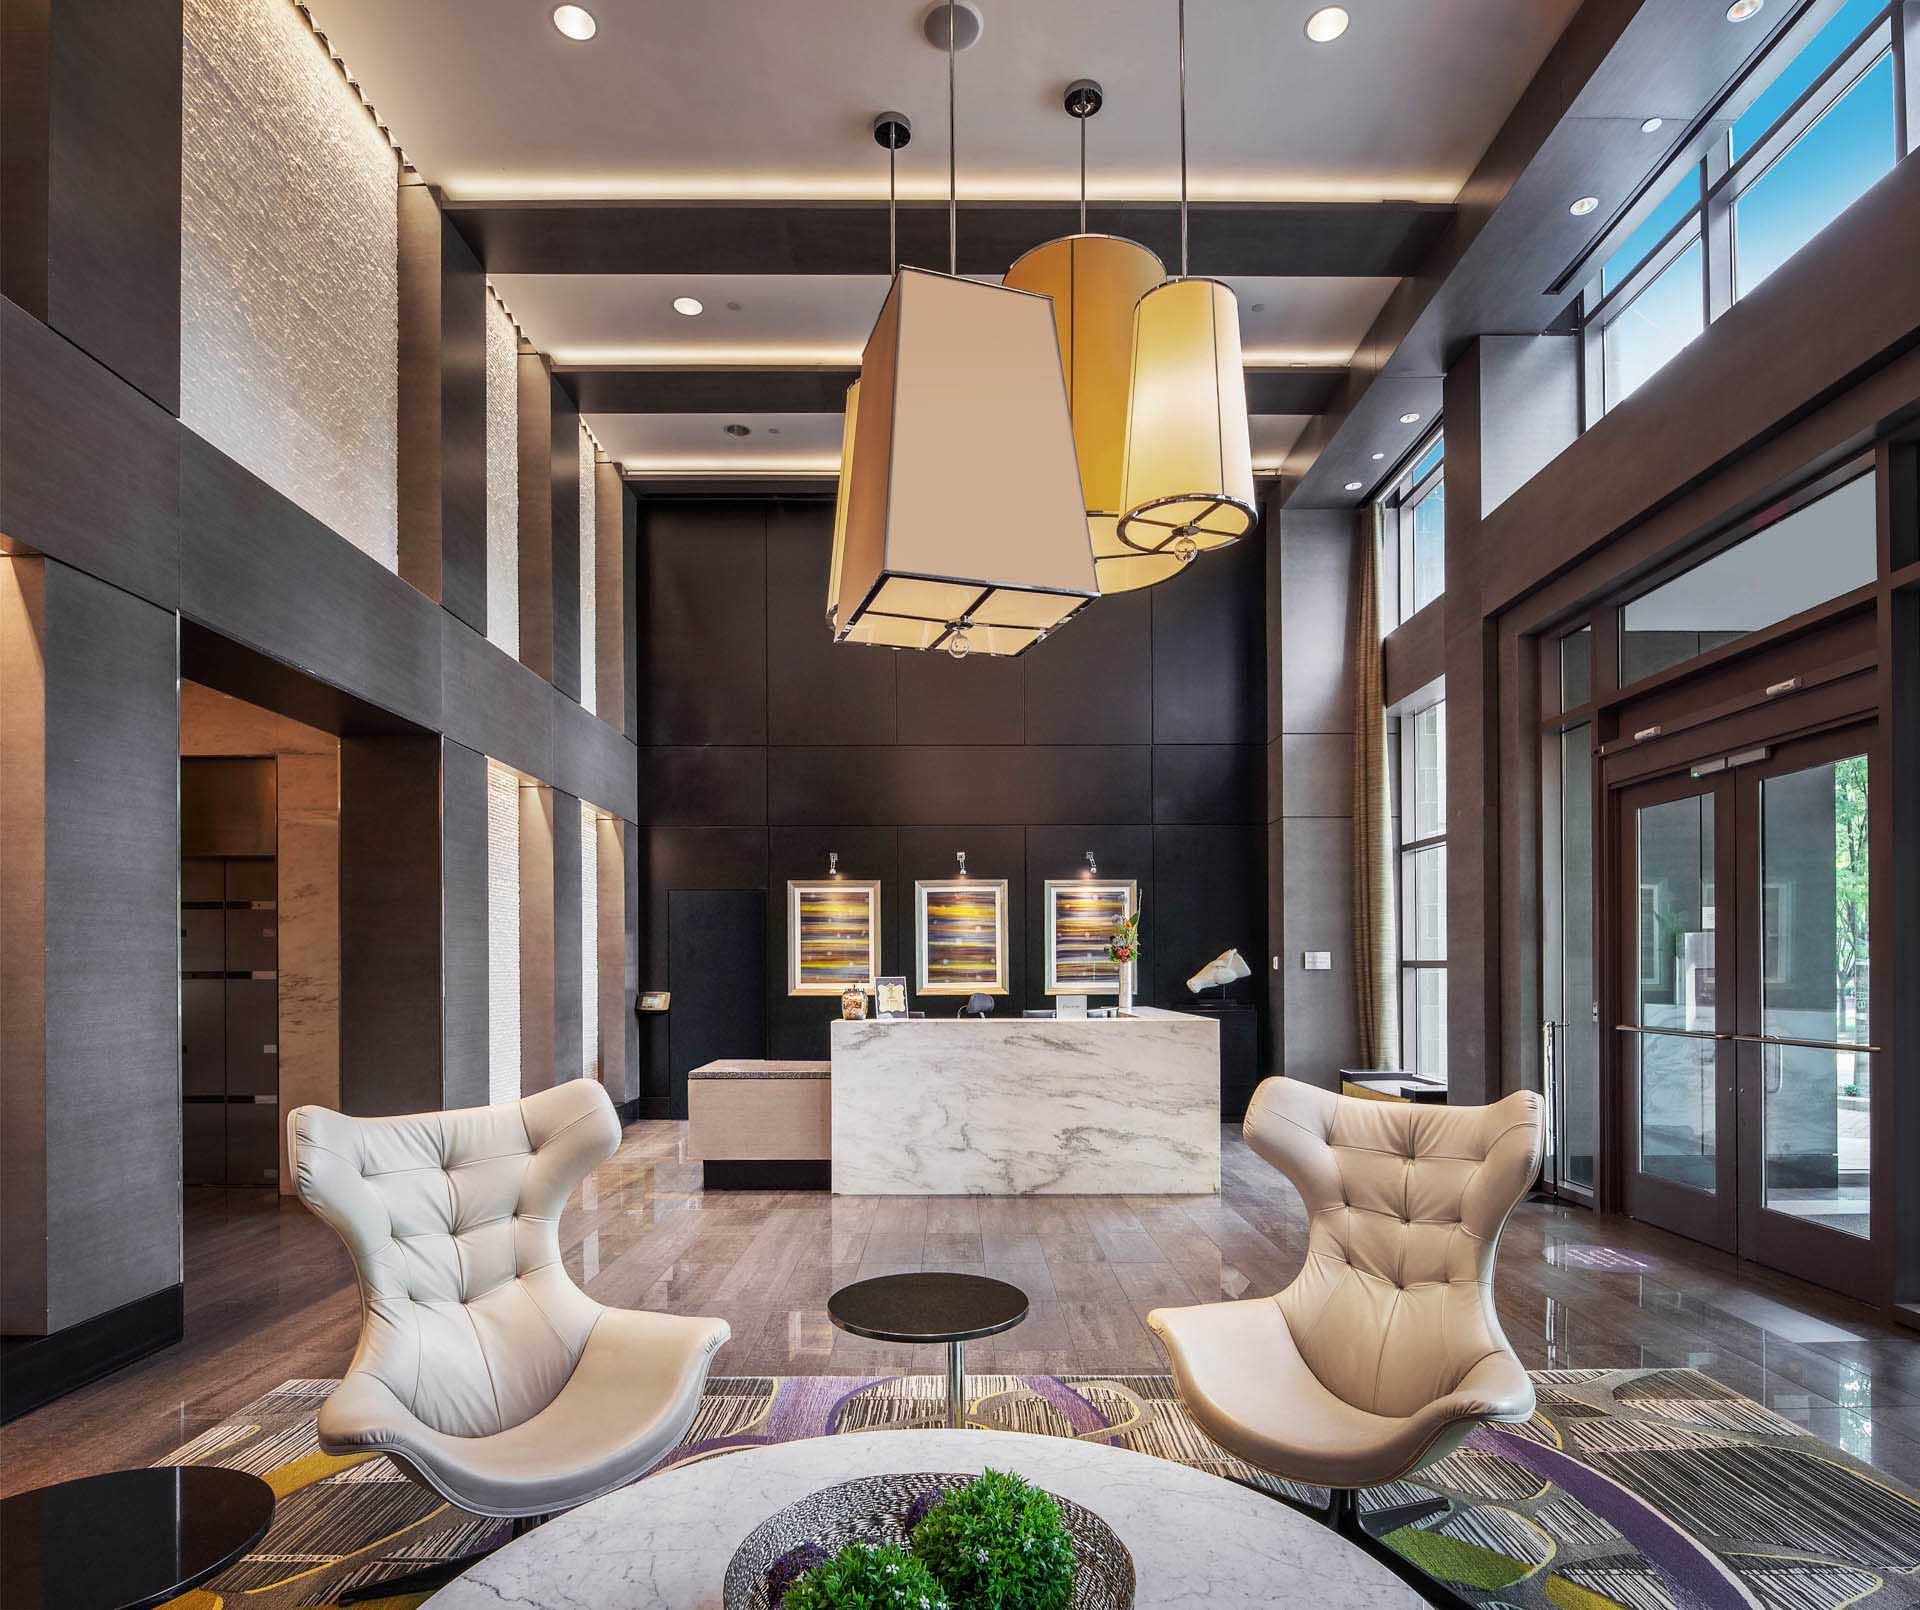 Expansive shot of double-height lobby with white armchairs and marble lobby desk in the background